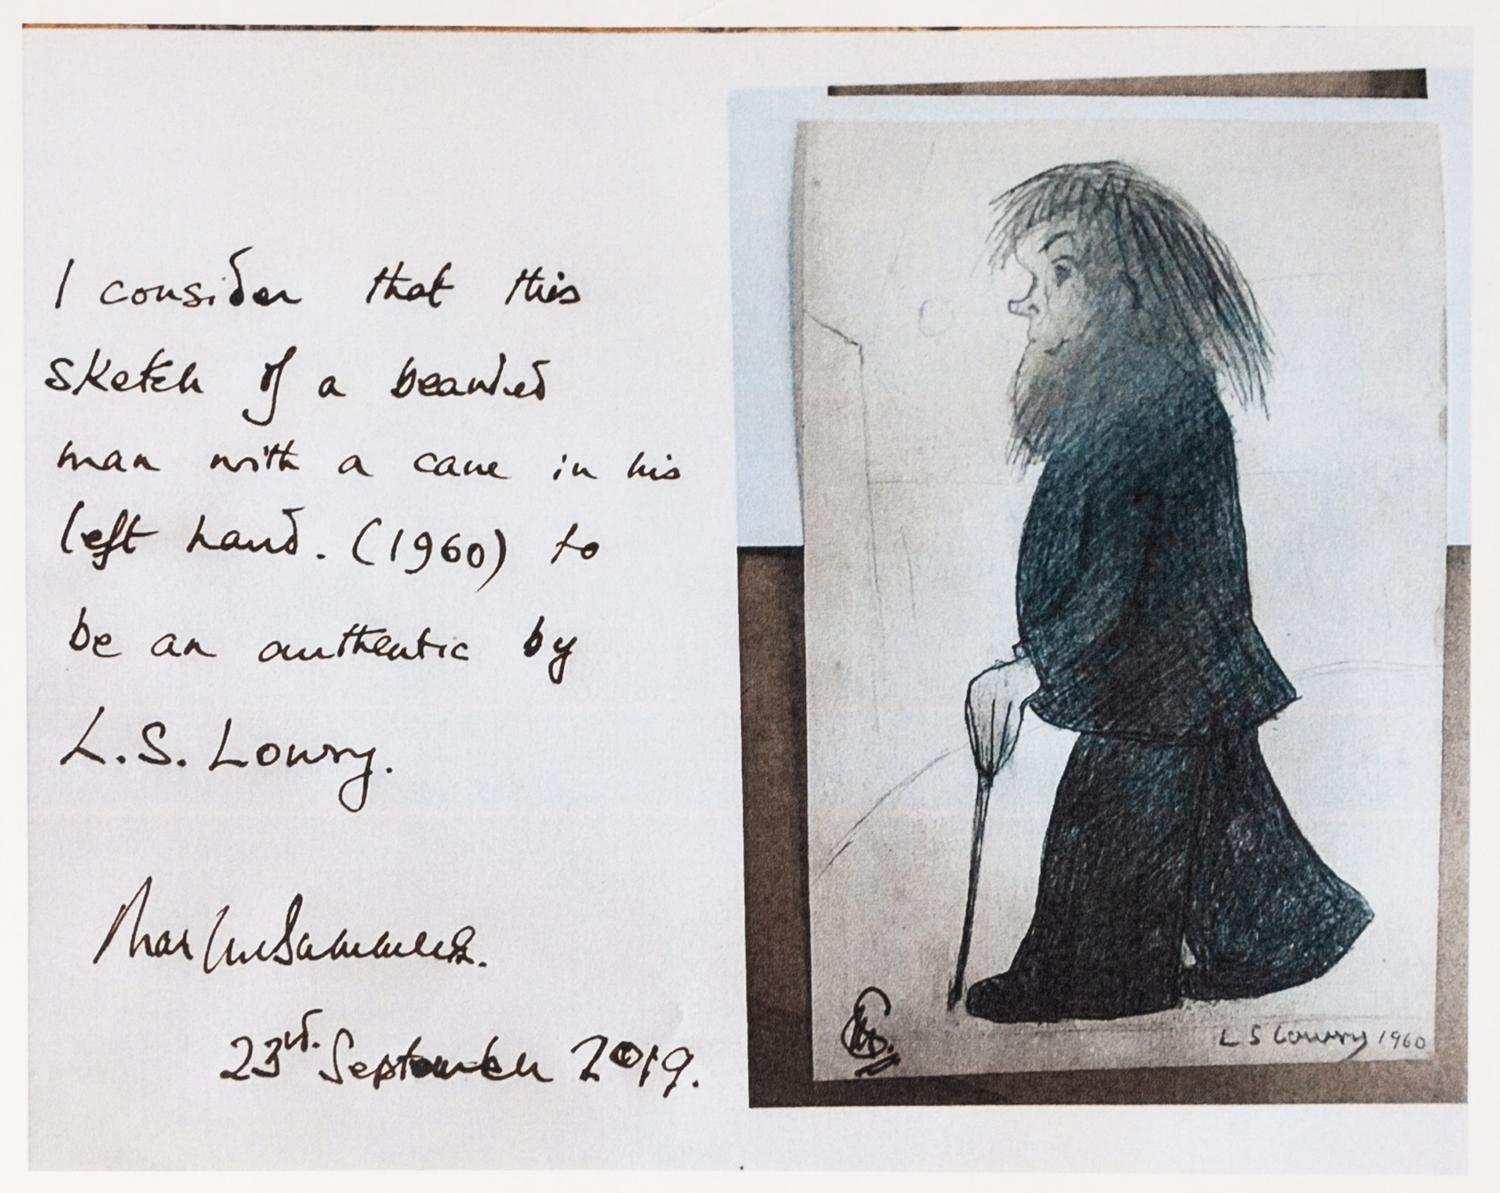 Lot 79 - LAURENCE STEPHEN LOWRY (1887 - 1976) PENCIL DRAWING Bearded man with a walking cane in his left hand